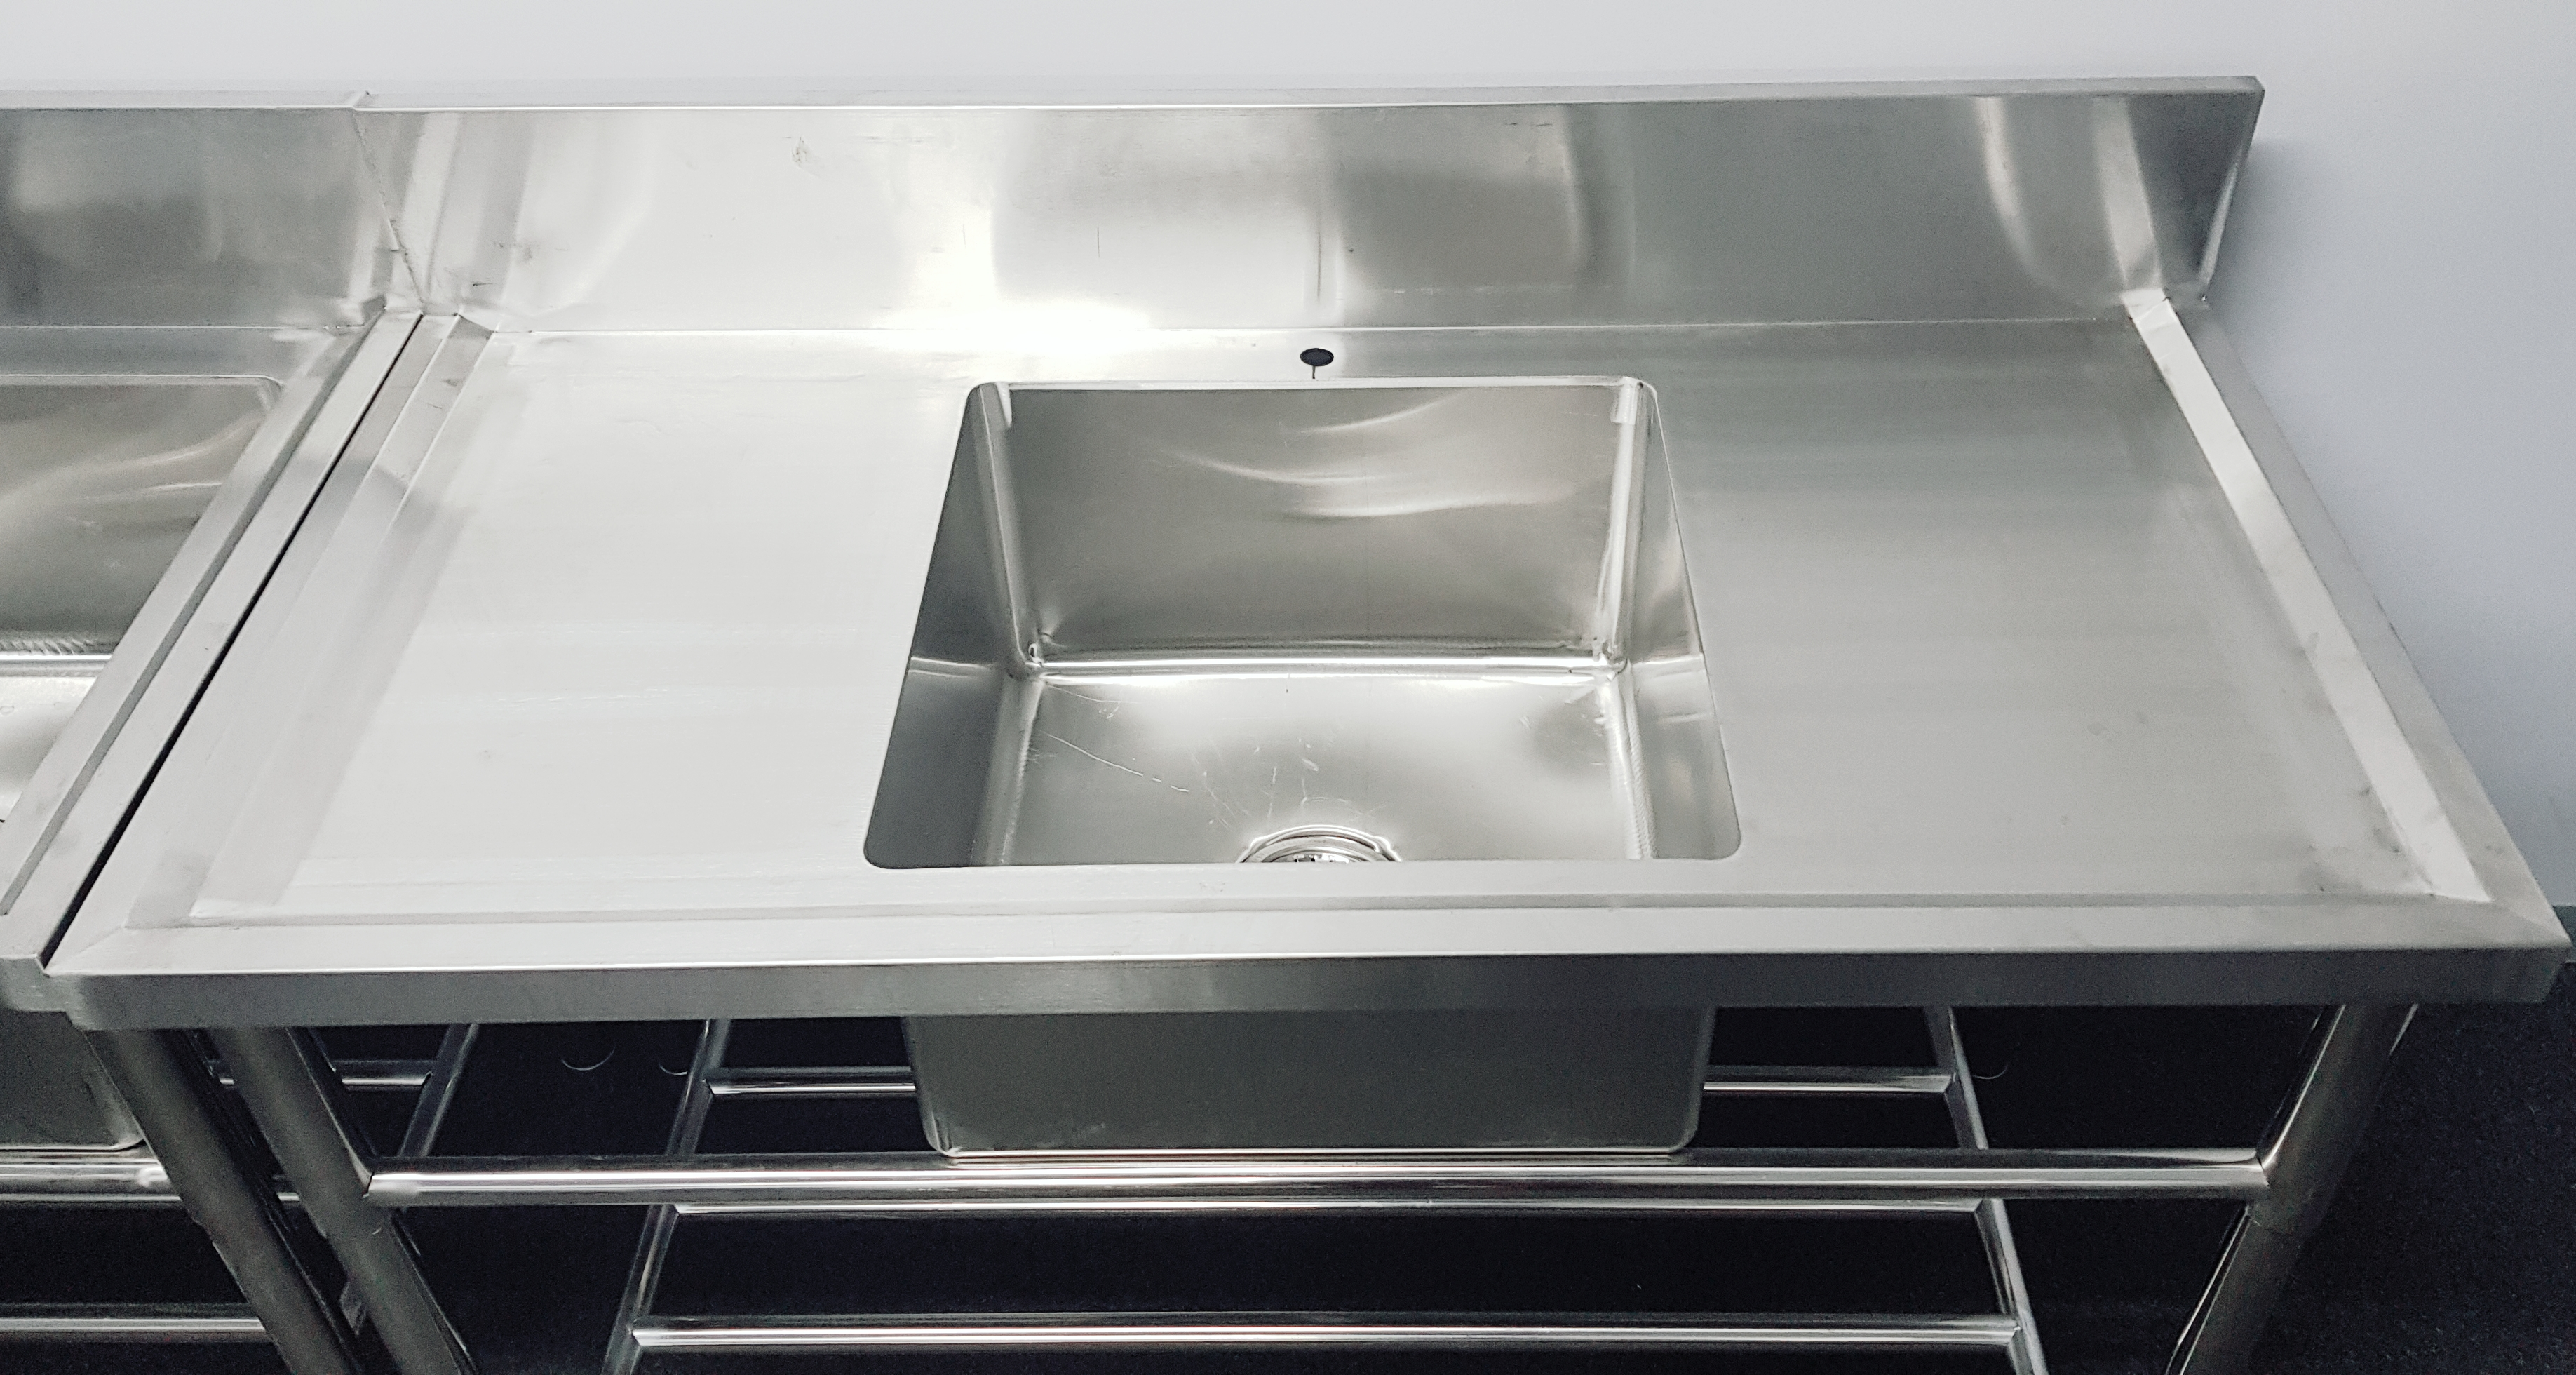 Sinks For Sale Stainless Steel Sink Stainless Steel Basin Prep Sinks Stainless Steel Tables Sunrose Online Jhb Commercial Bakery Butchery Catering Refrigeration Equipment